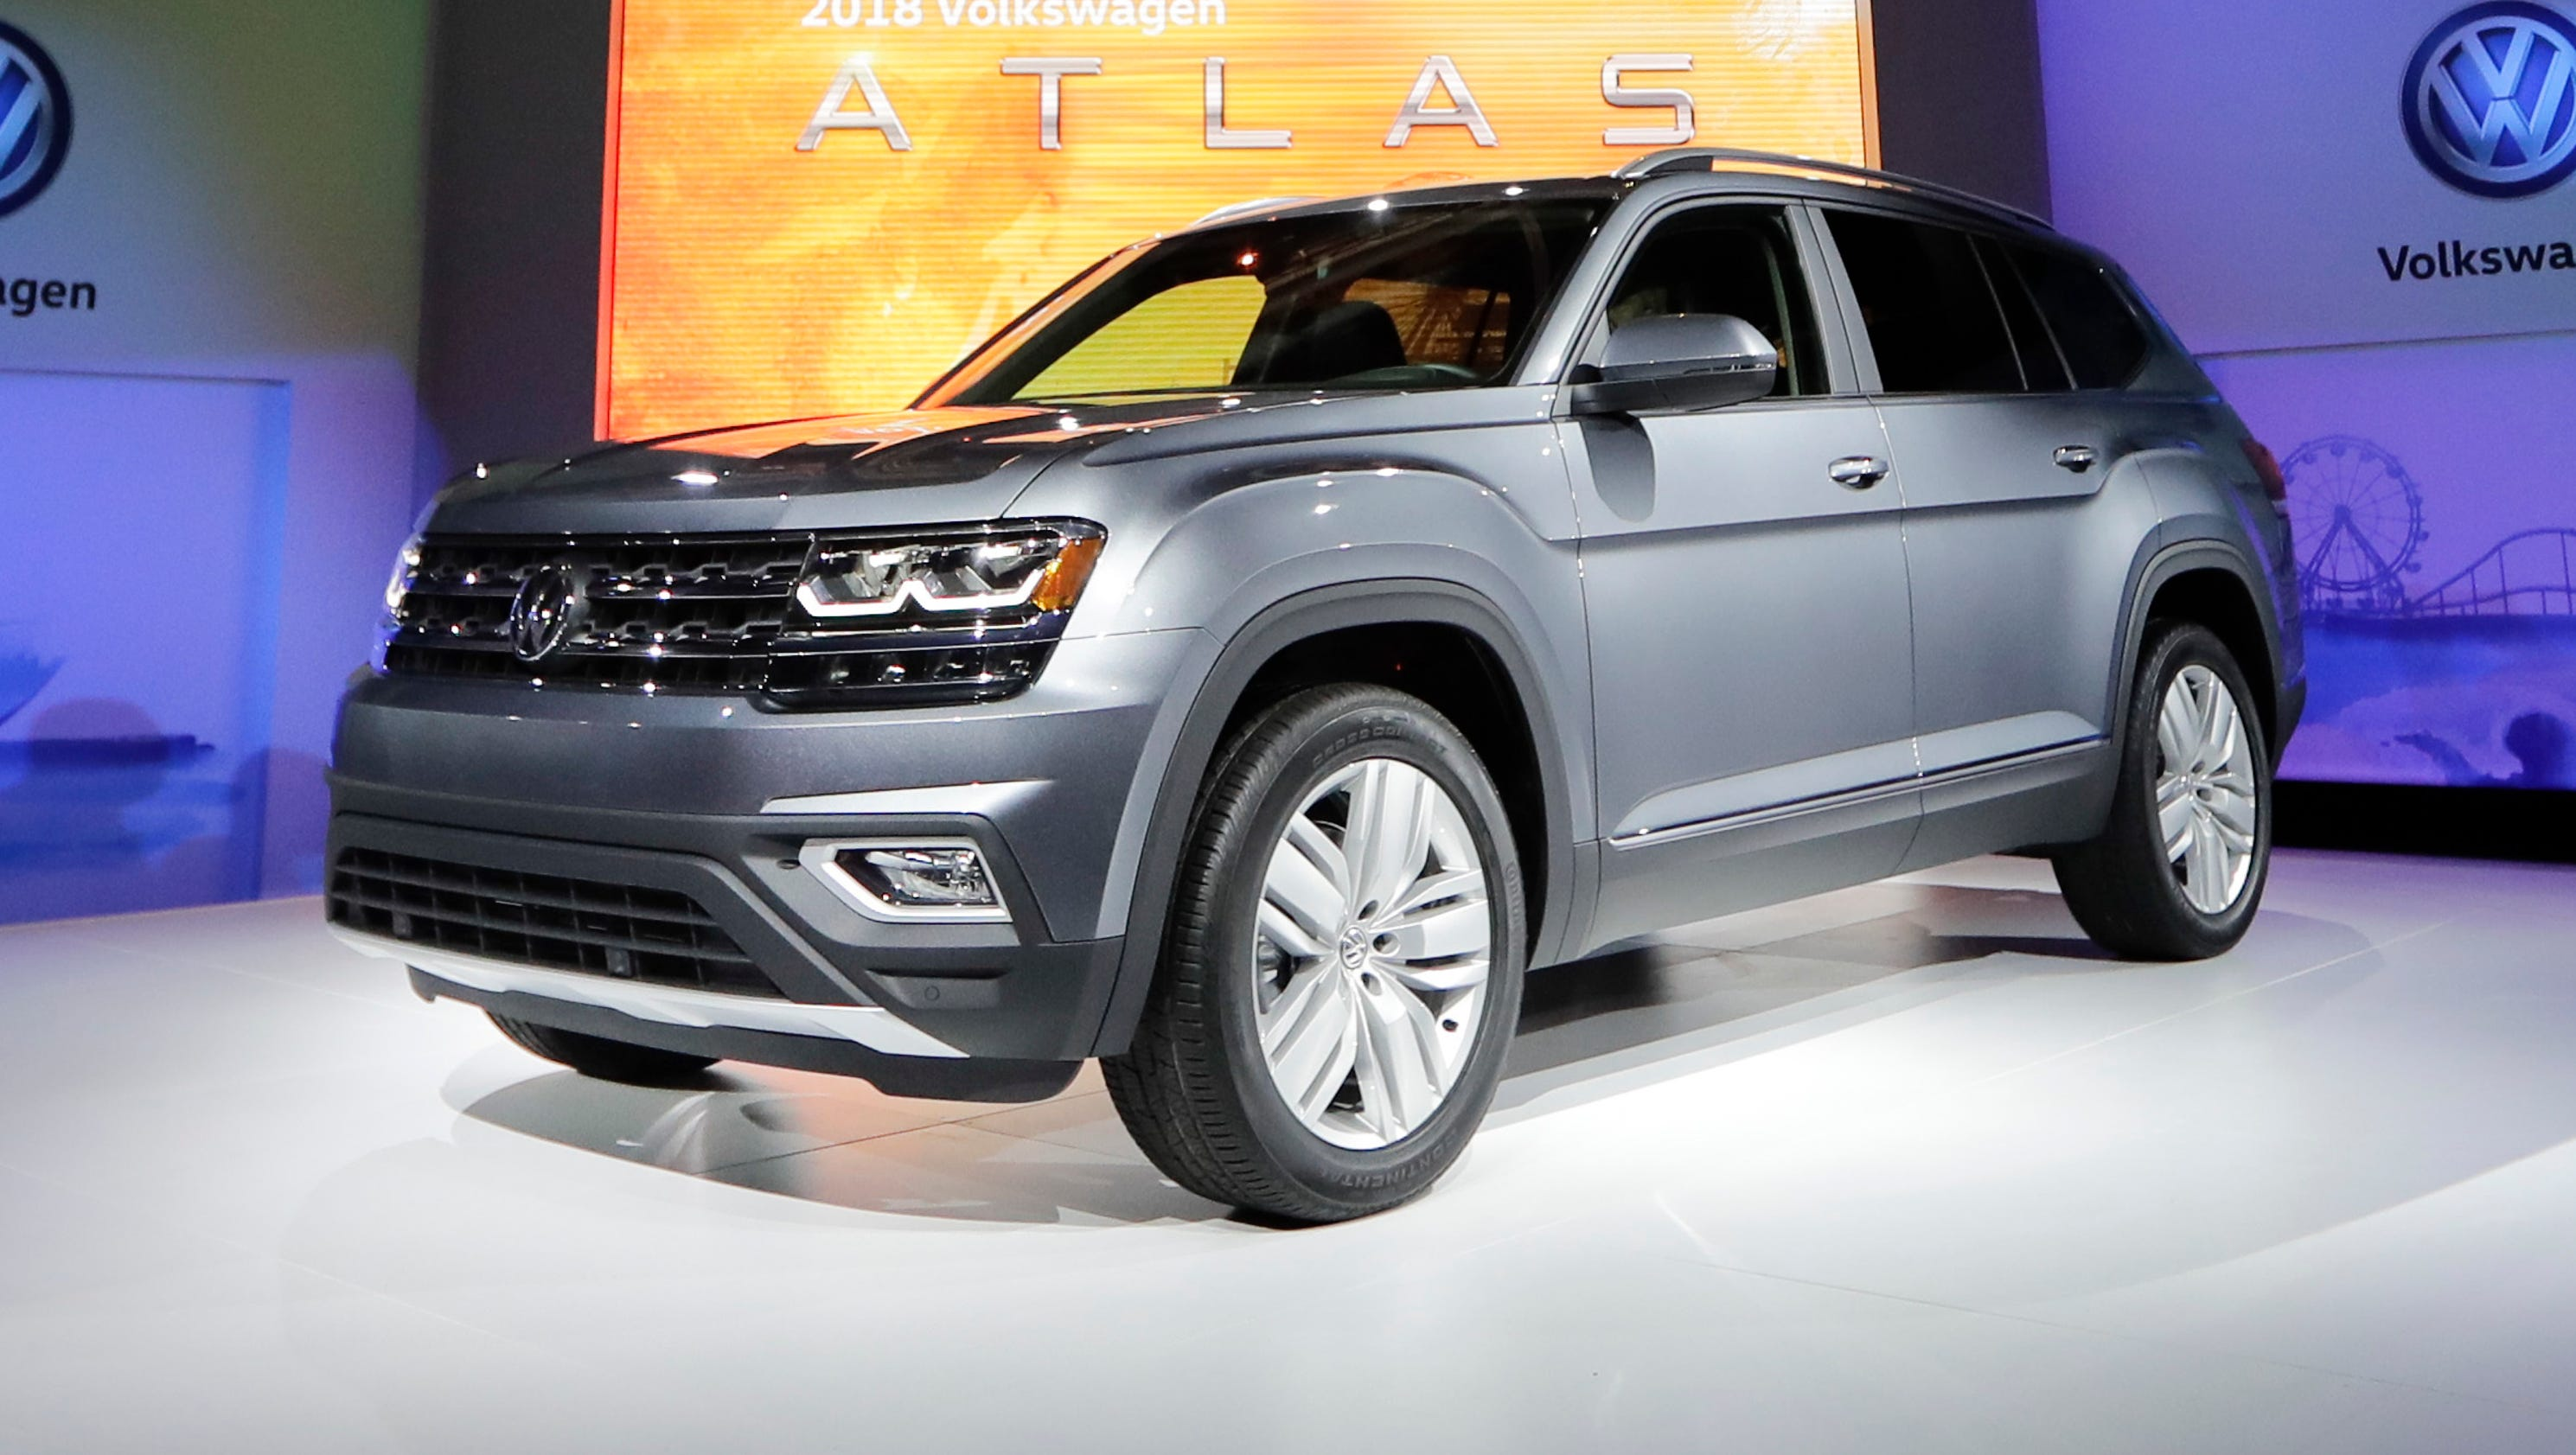 volkswagen bets on suvs as it aims to restore trust. Black Bedroom Furniture Sets. Home Design Ideas